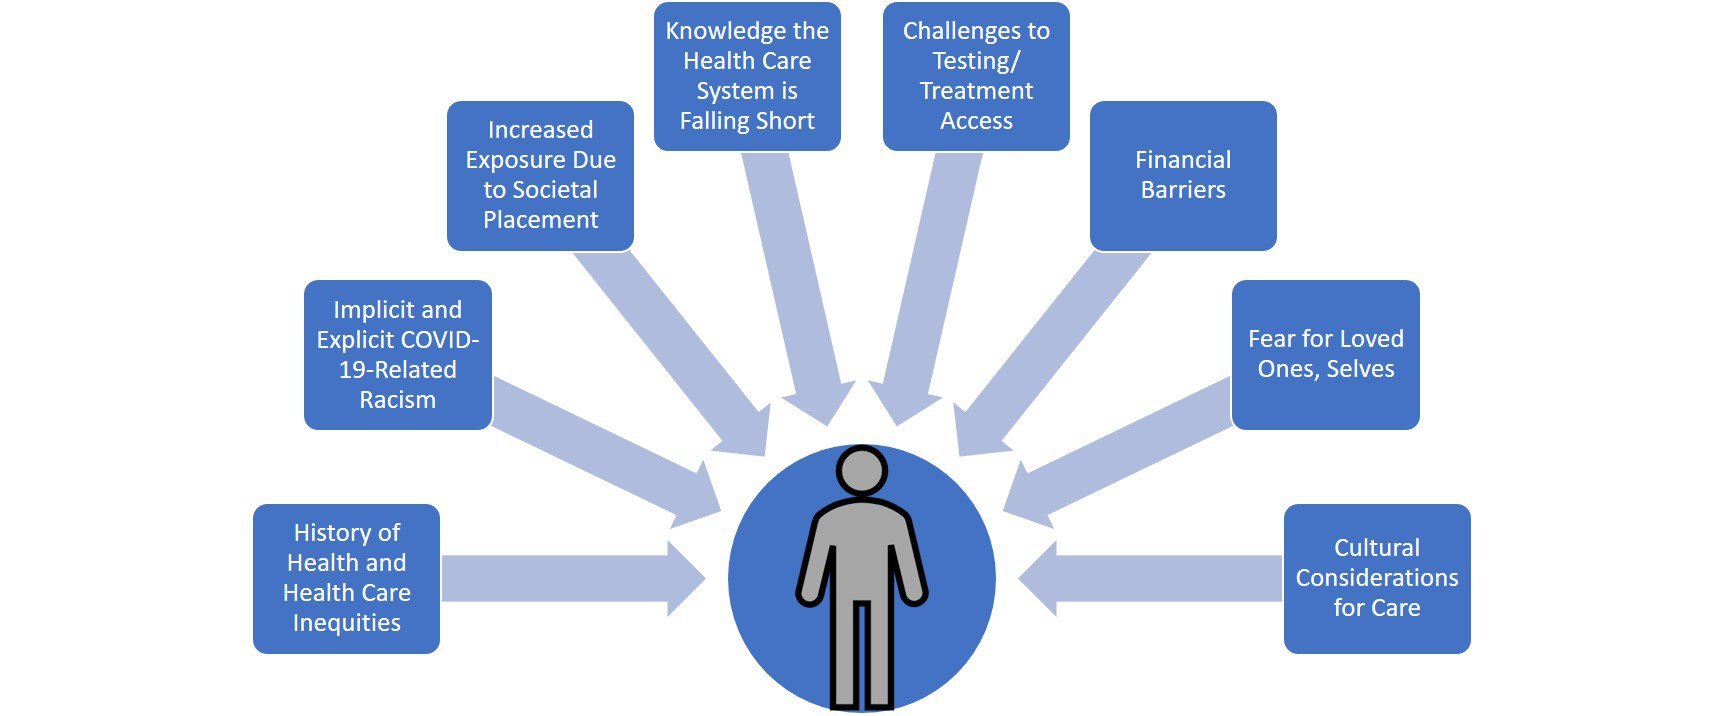 Factors that May Inform COVID+ Patients' Experience of Care